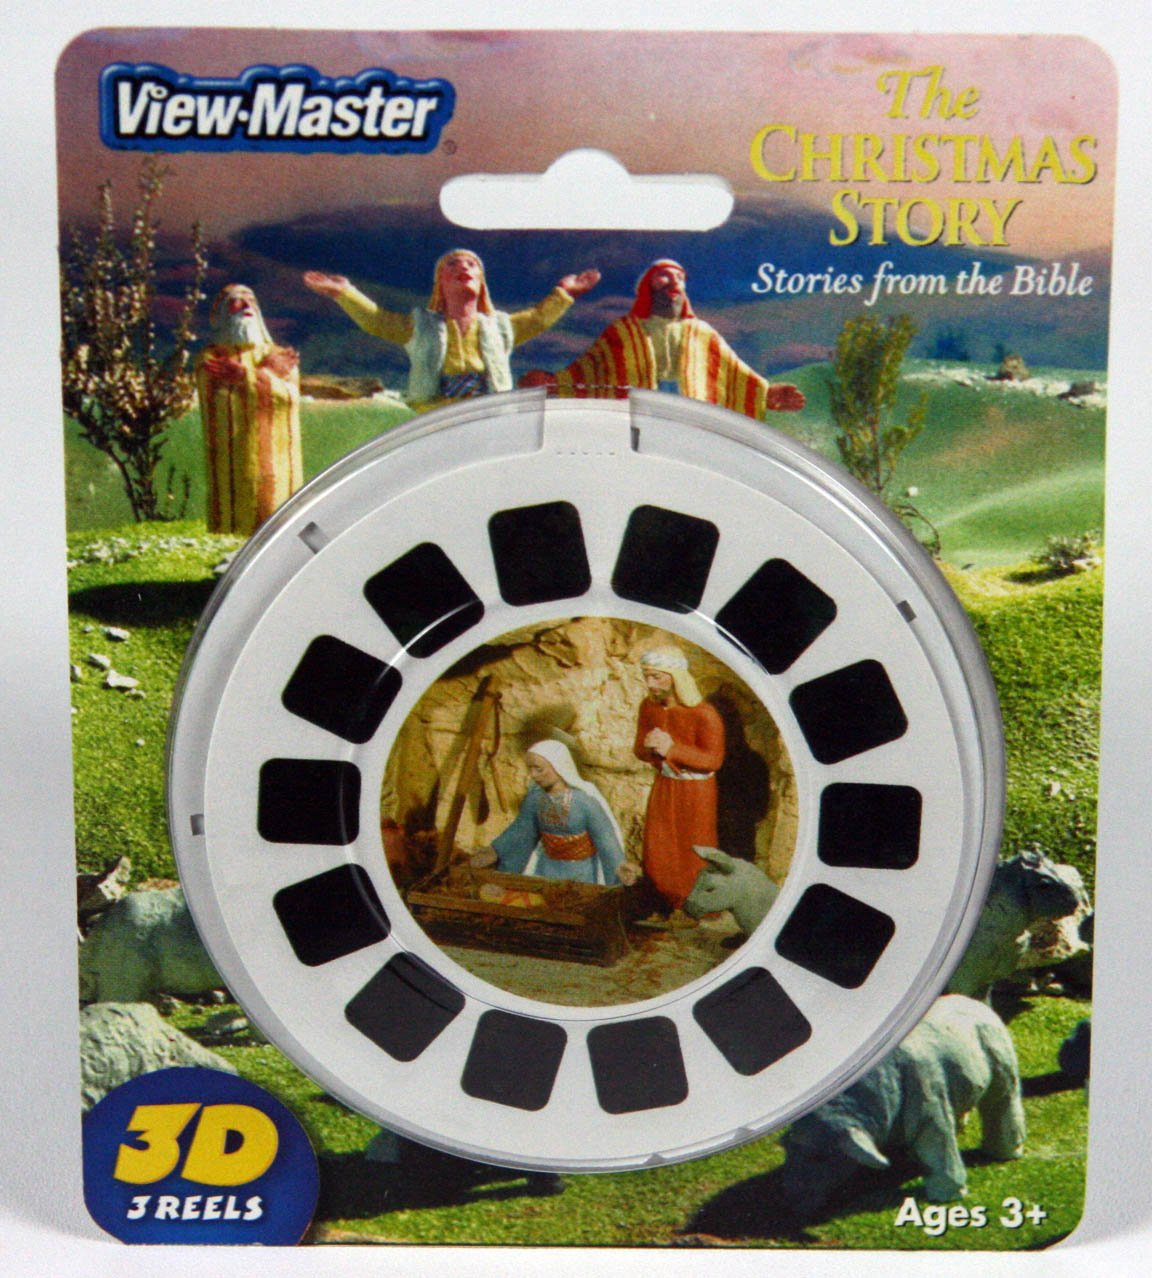 Viewmaster Reel set of 3 Christmas Story from the Bible by View Master (Image #1)